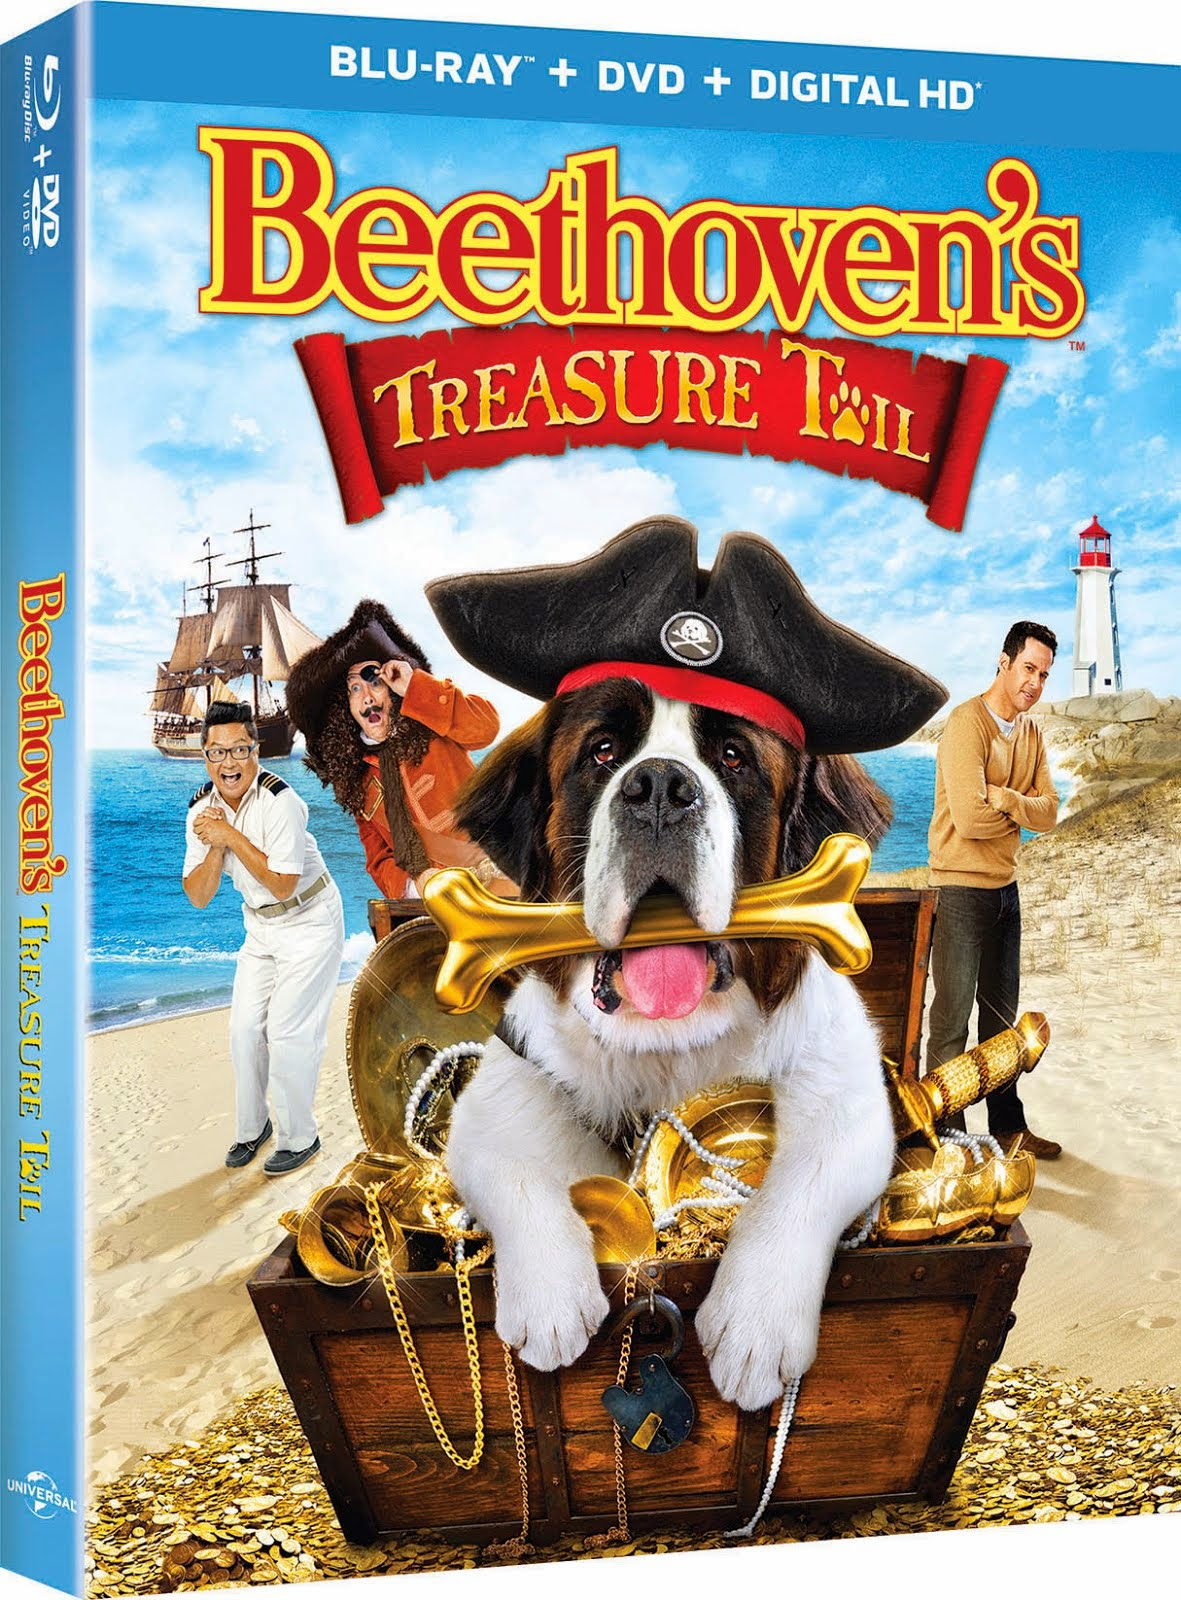 BEETHOVEN'S TREASURE TAIL ($26.98 value) 10 Winners. On Blu-ray & DVD. Through 11/8.